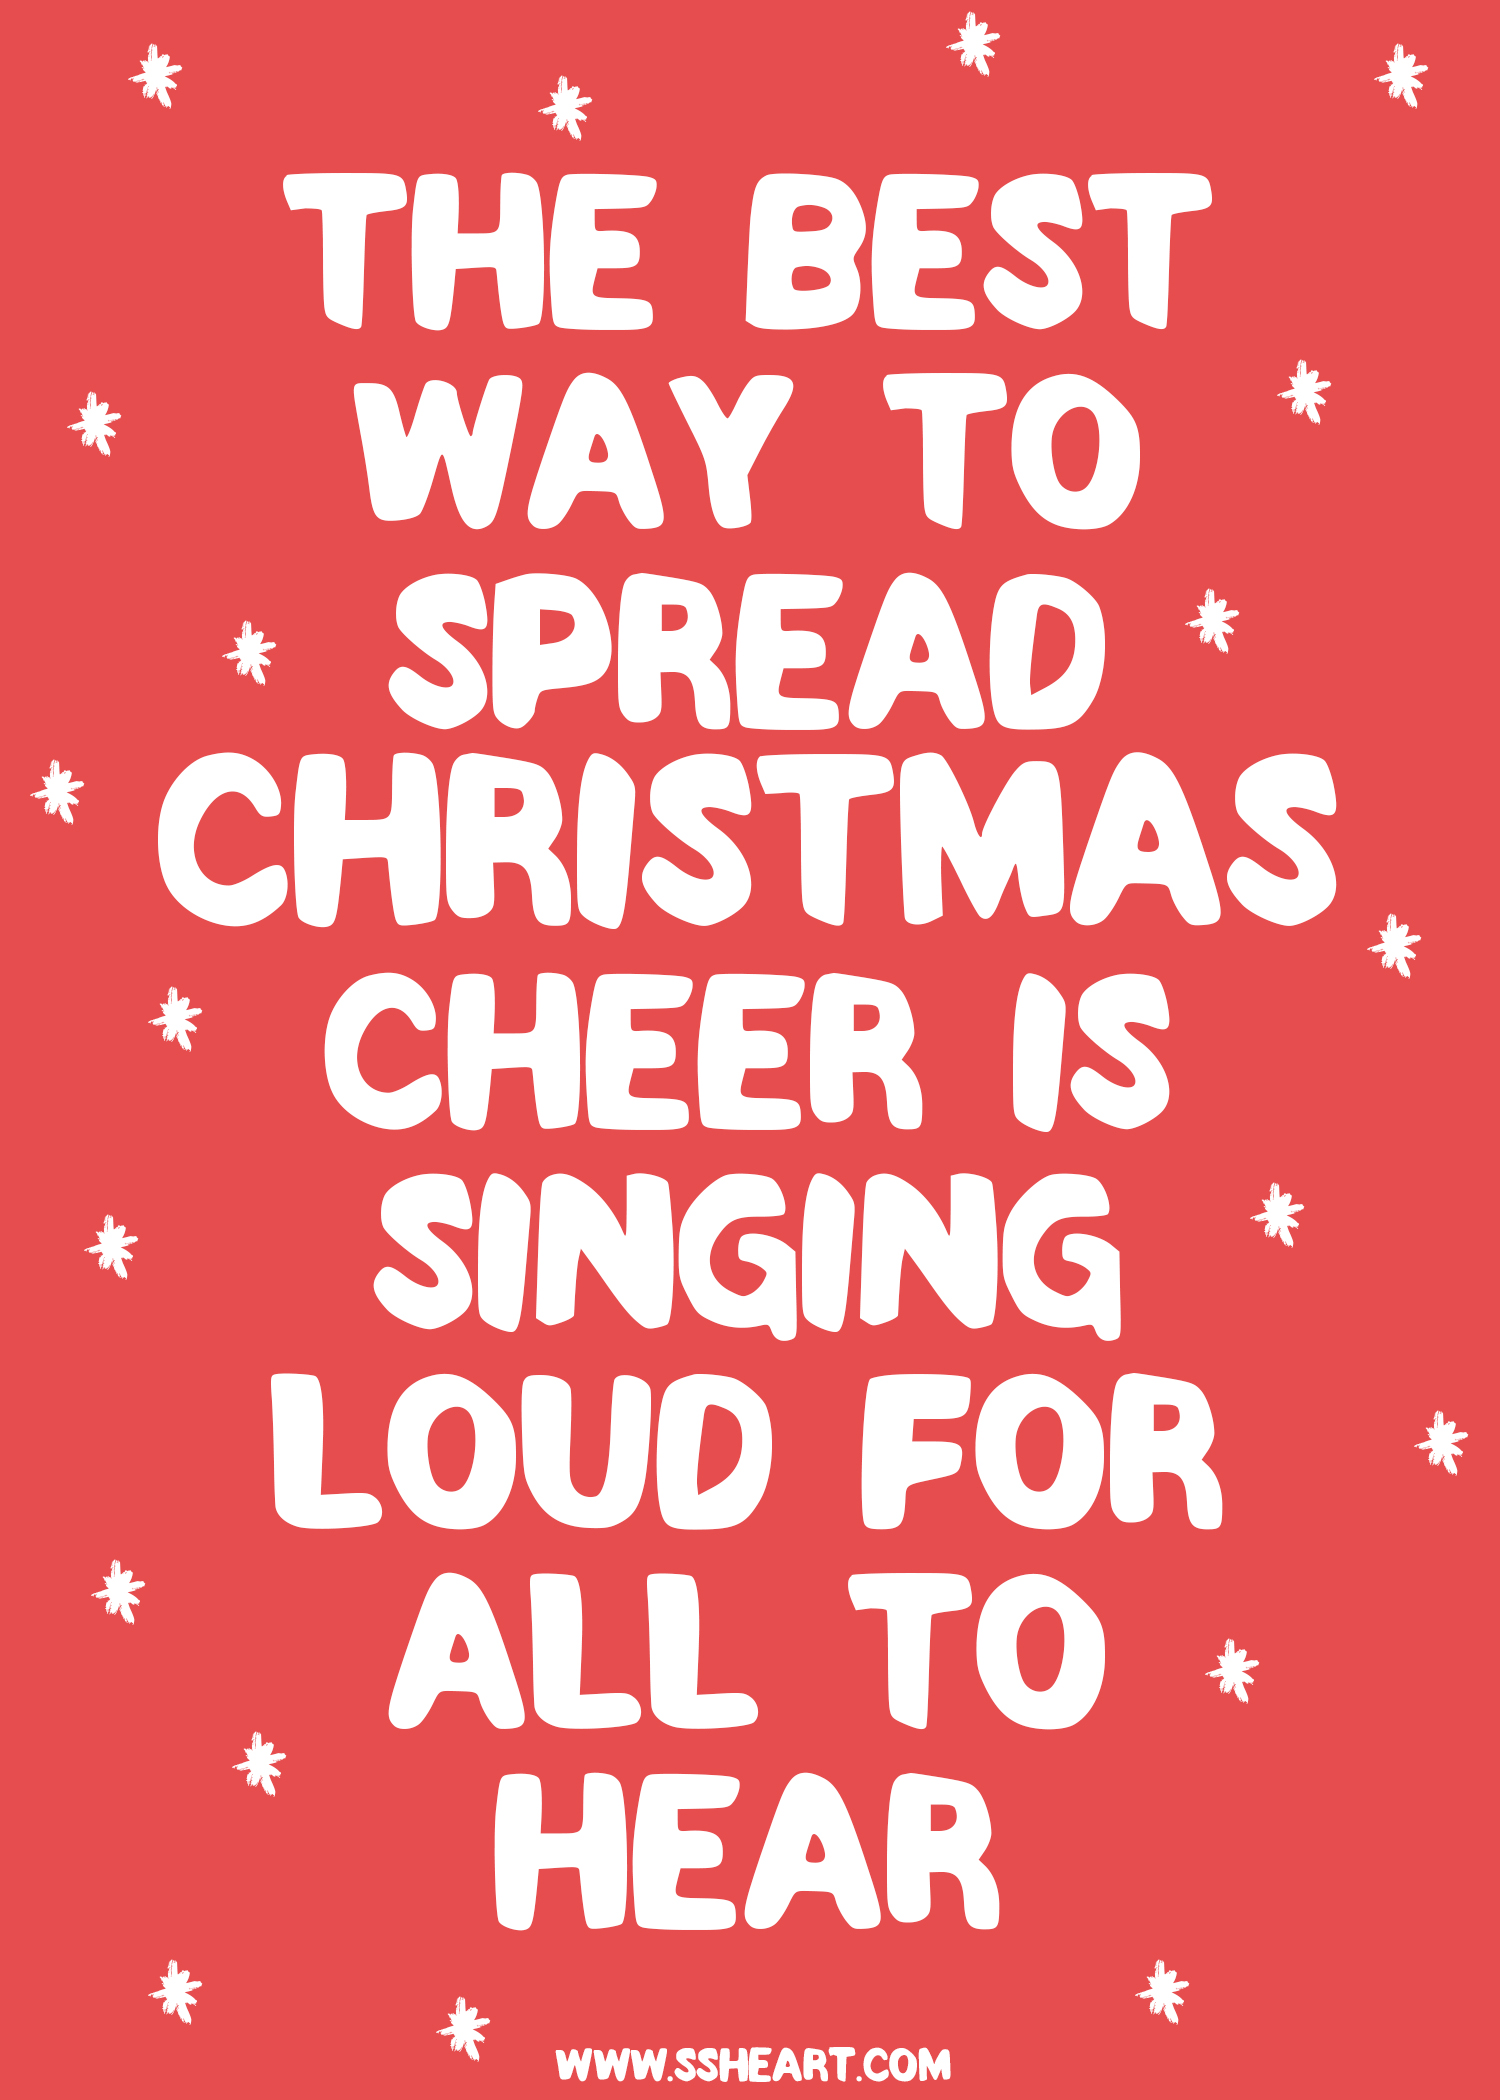 The best way to spread Christmas Cheer is singing loud for all to hear!!!